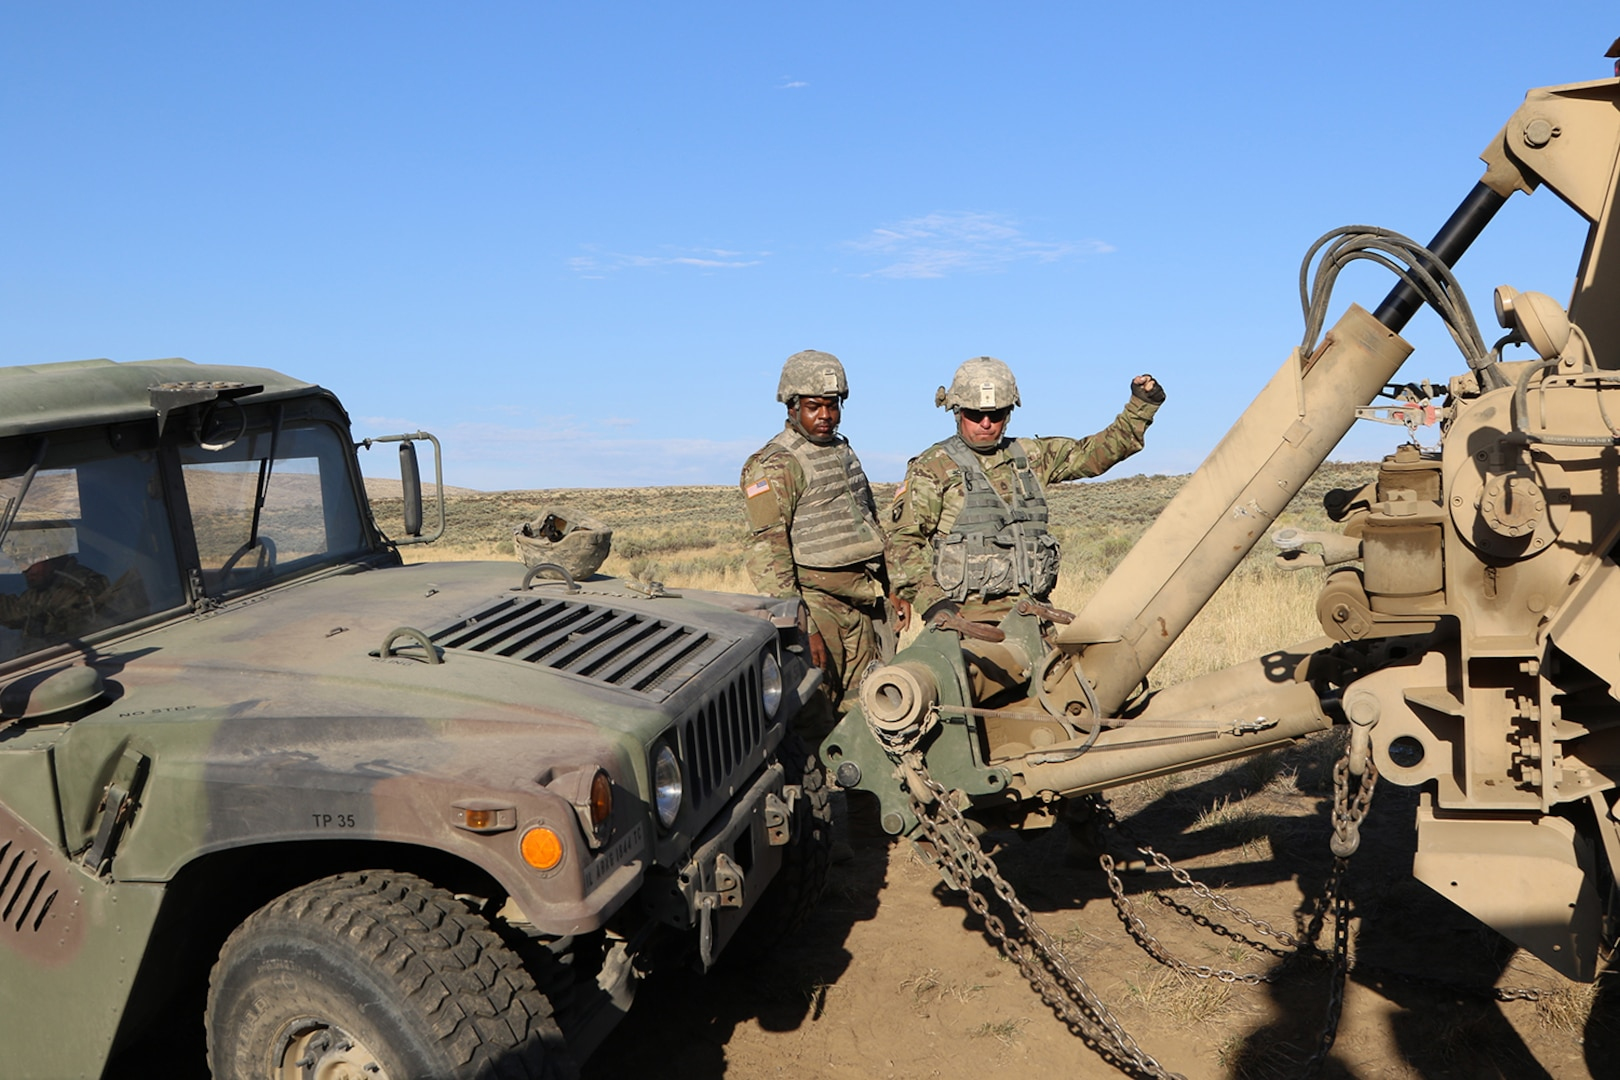 """Sgt. First Class Brian Jackson from the 1844th Transportation Company uses a """"halt"""" hand signal as his recovery vehicle's towbar lines up with the humvee during a training lane in Rising Thunder 2019."""